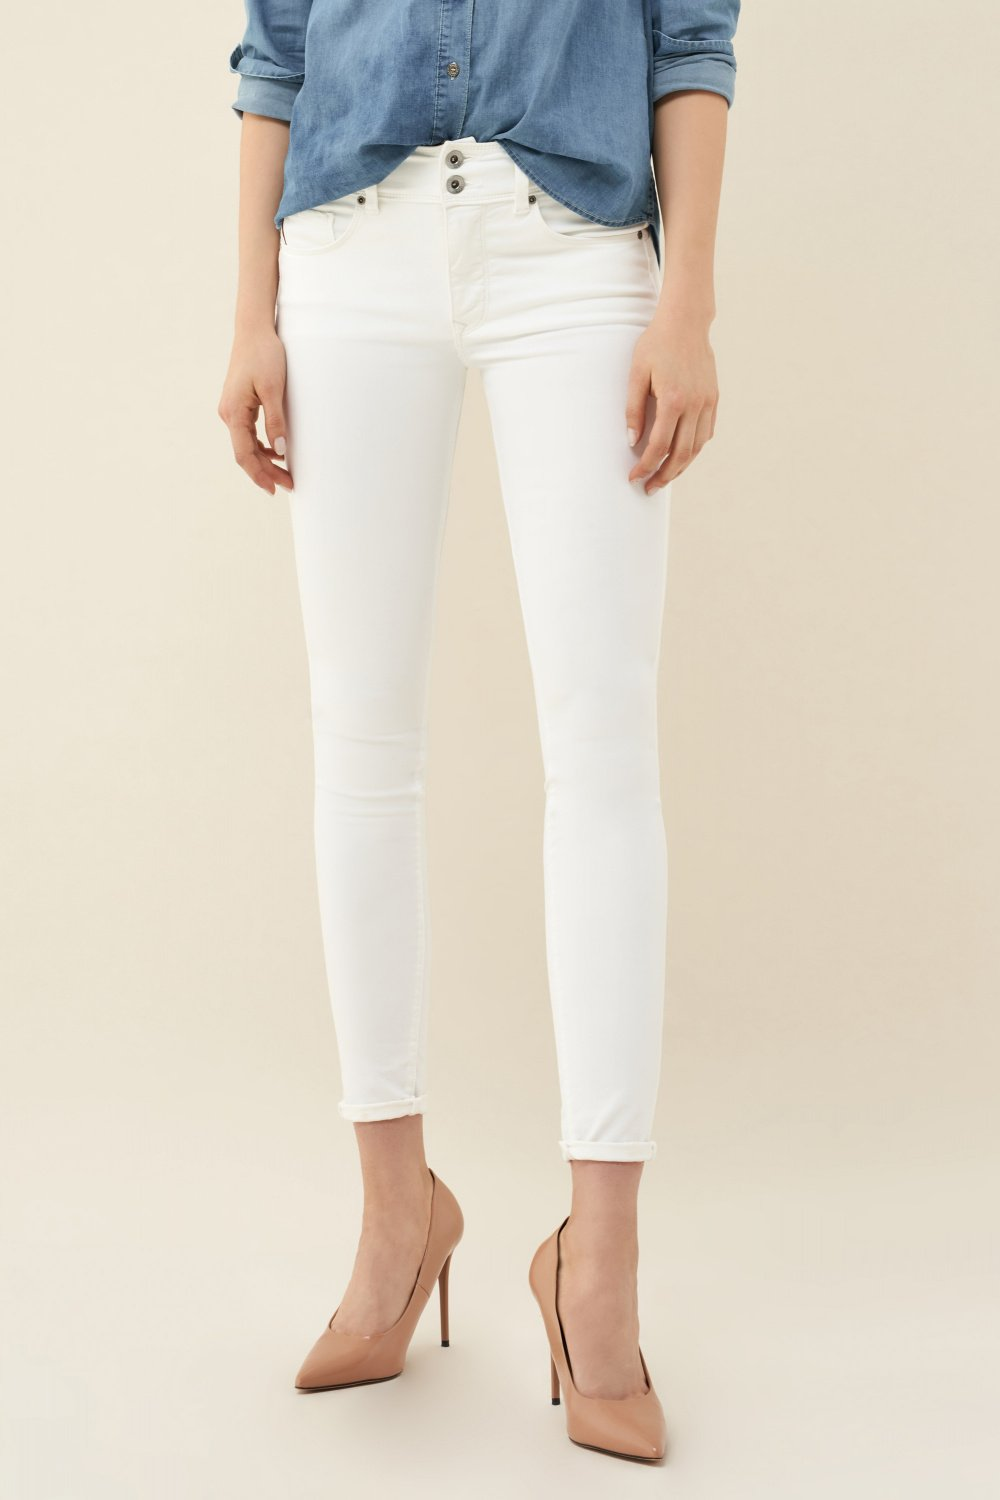 Salsa - Push In - Skinny Leg White